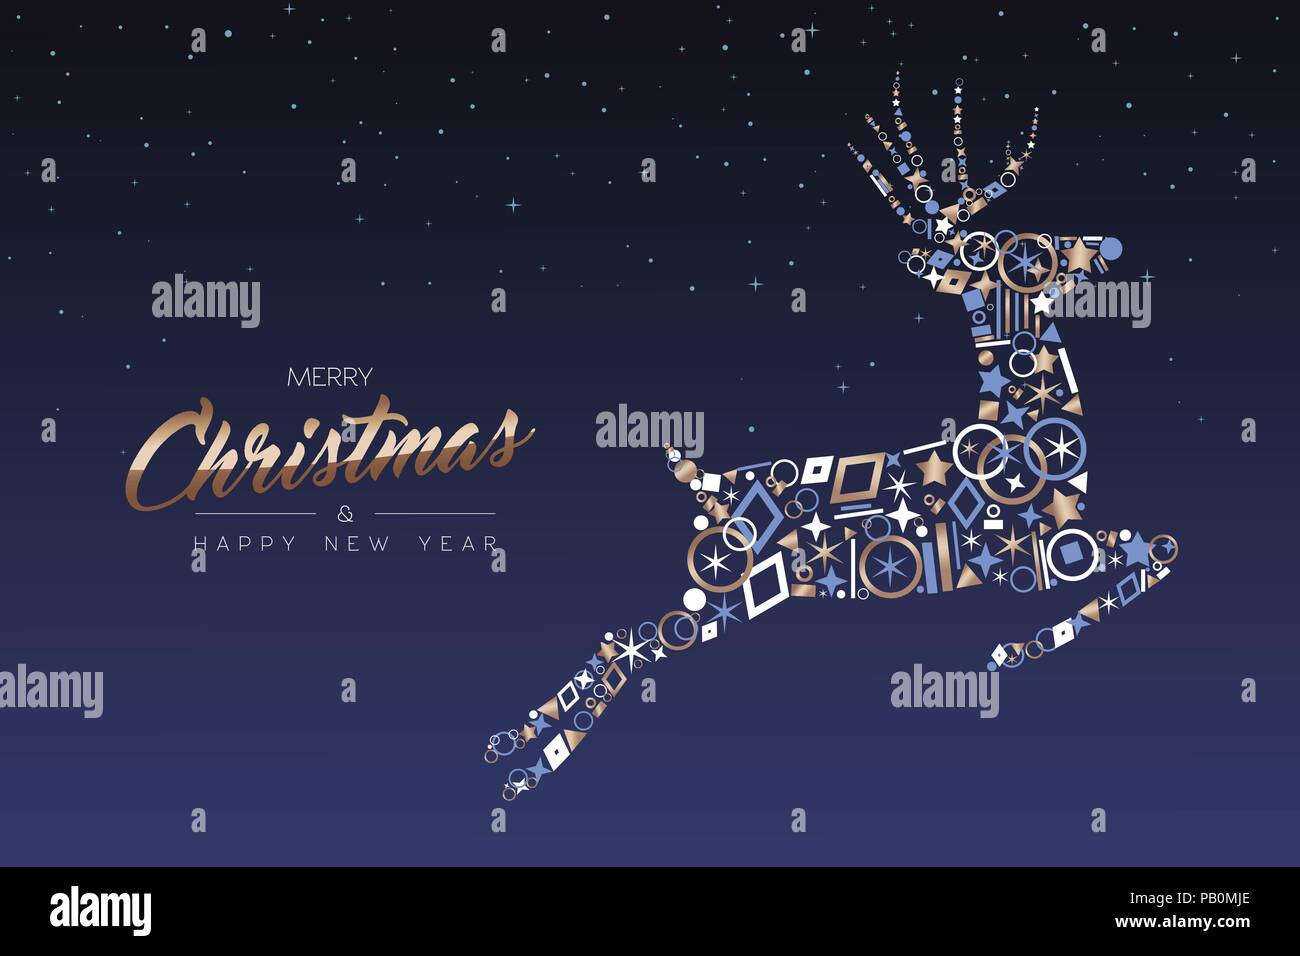 merry christmas and happy new year greeting card elegant xmas reindeer made of outline icon luxury decoration copper color holiday illustration eps